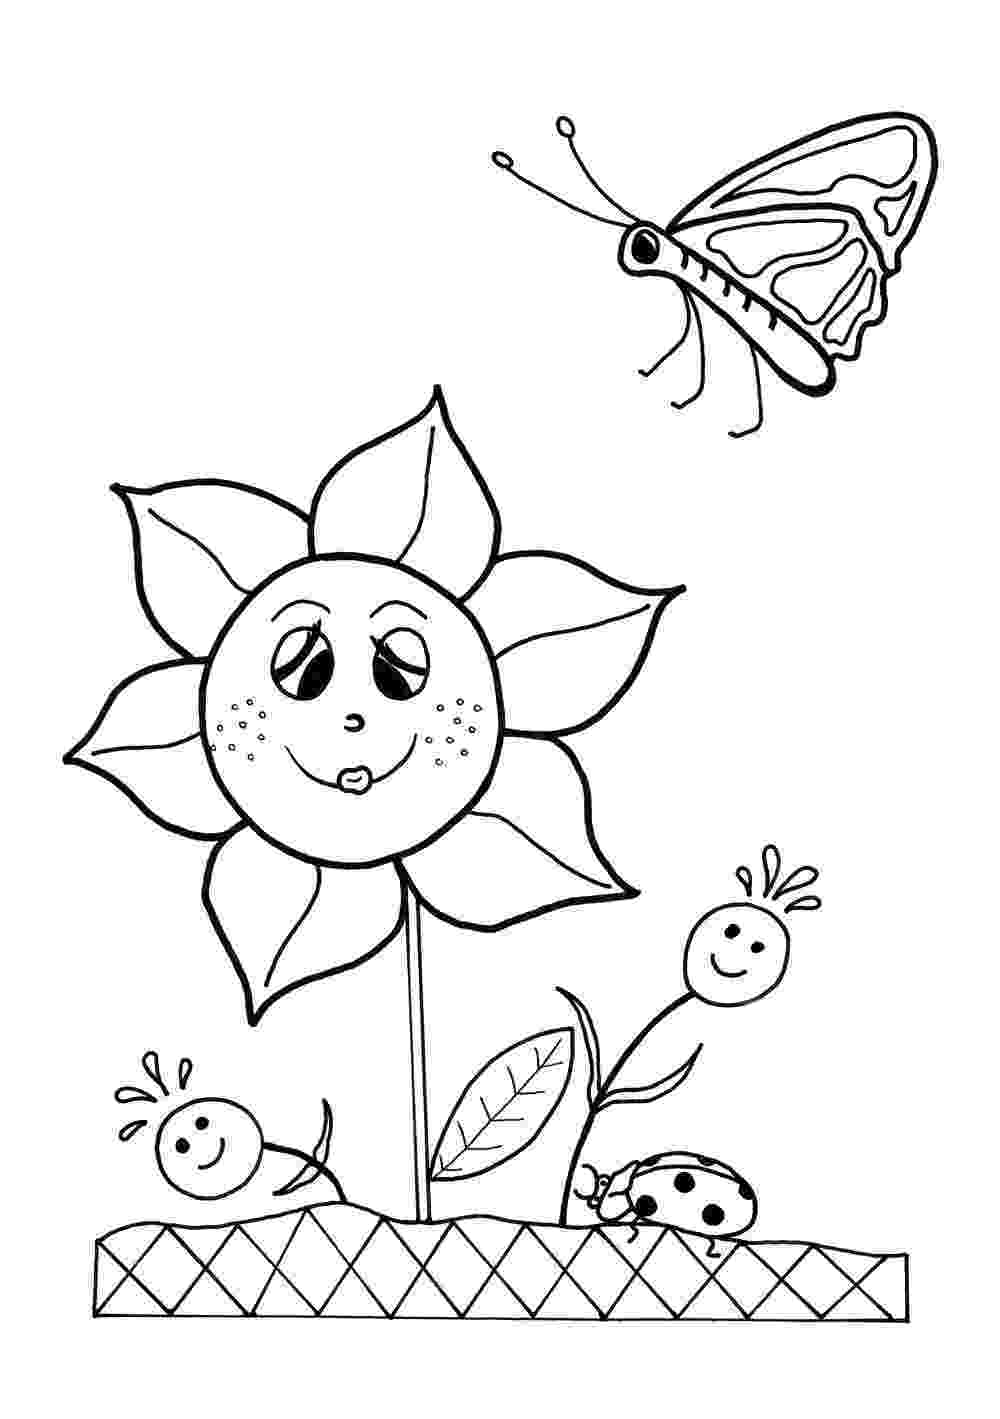 spring coloring pages spring coloring pages best coloring pages for kids pages spring coloring